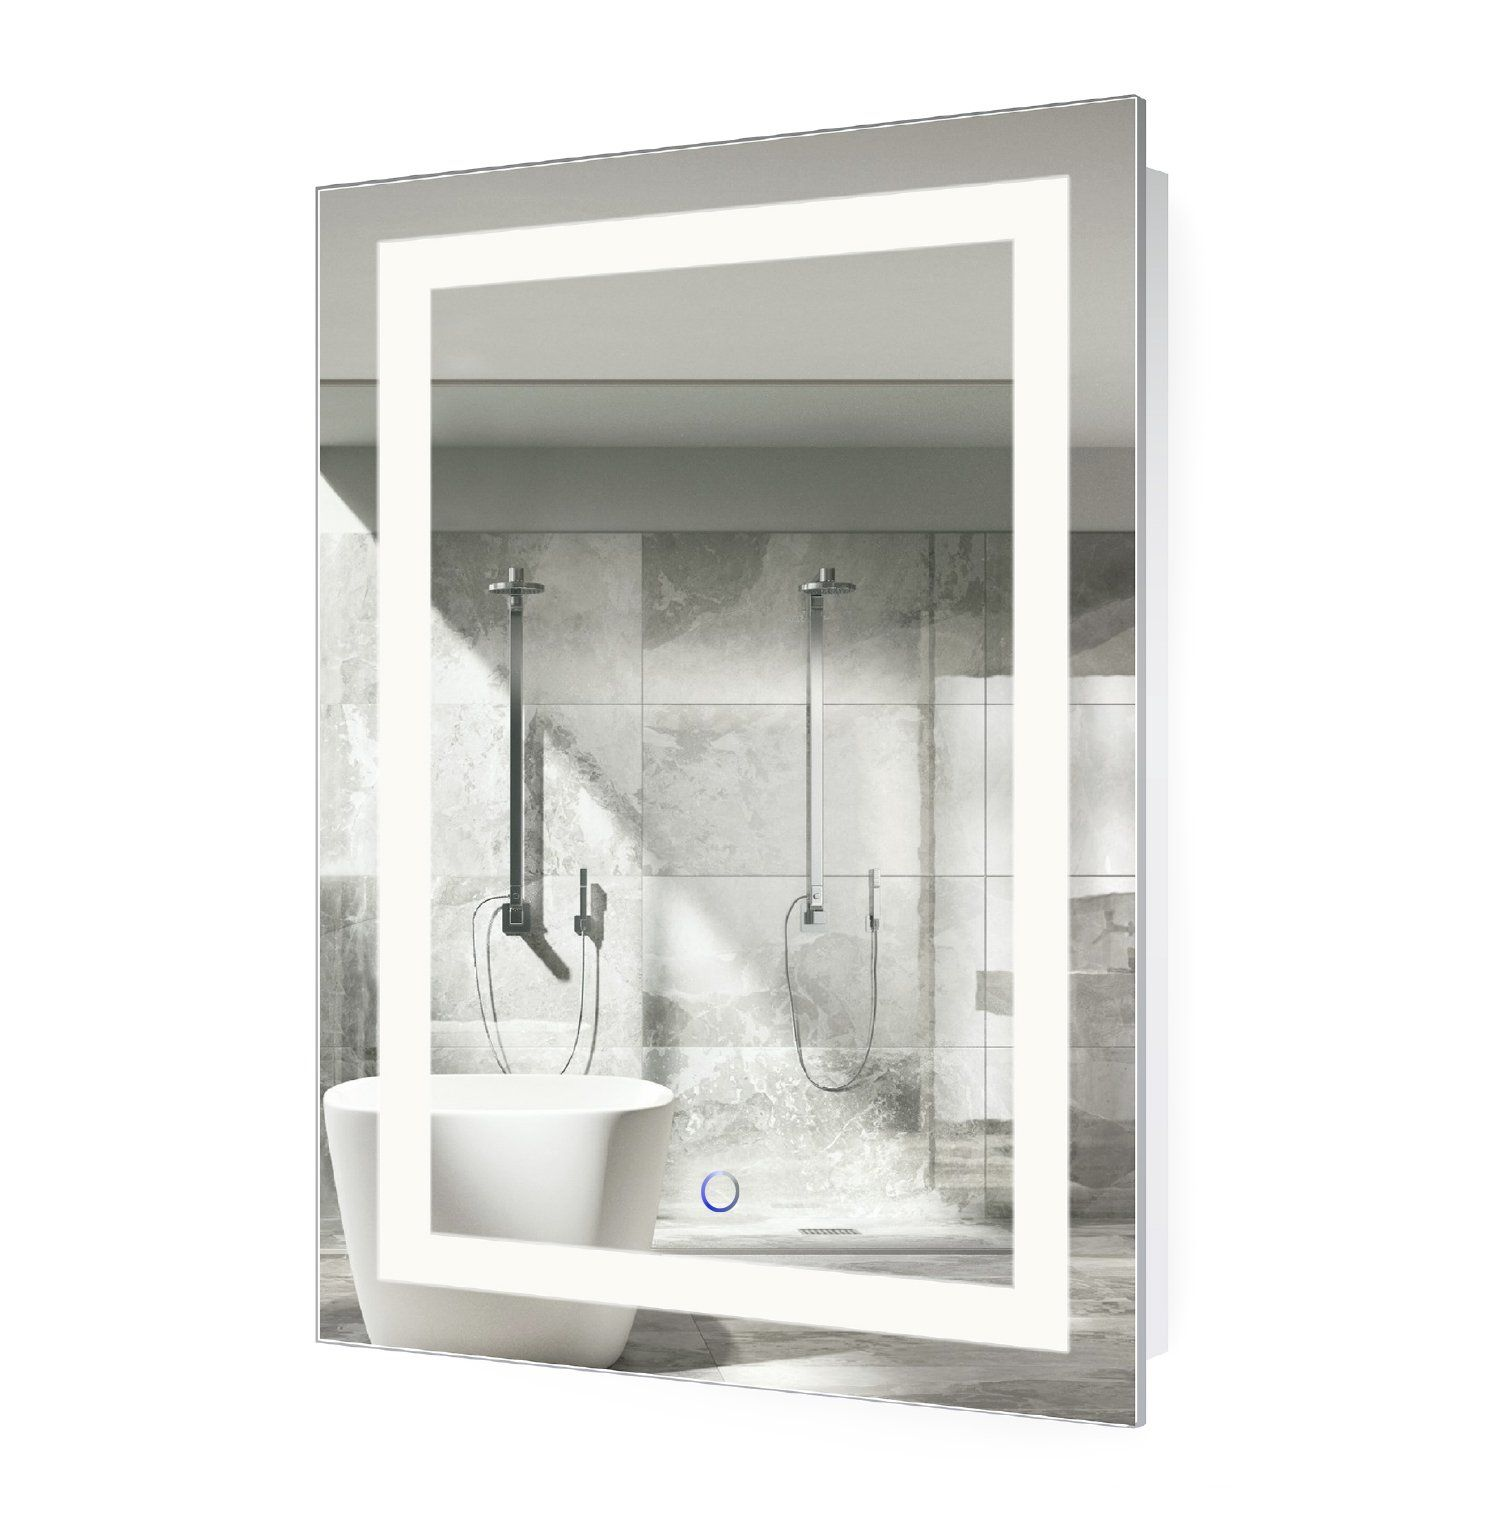 72 inch wall mirror krugg large 72 inch 30 led bathroom mirror lighted vanity includes